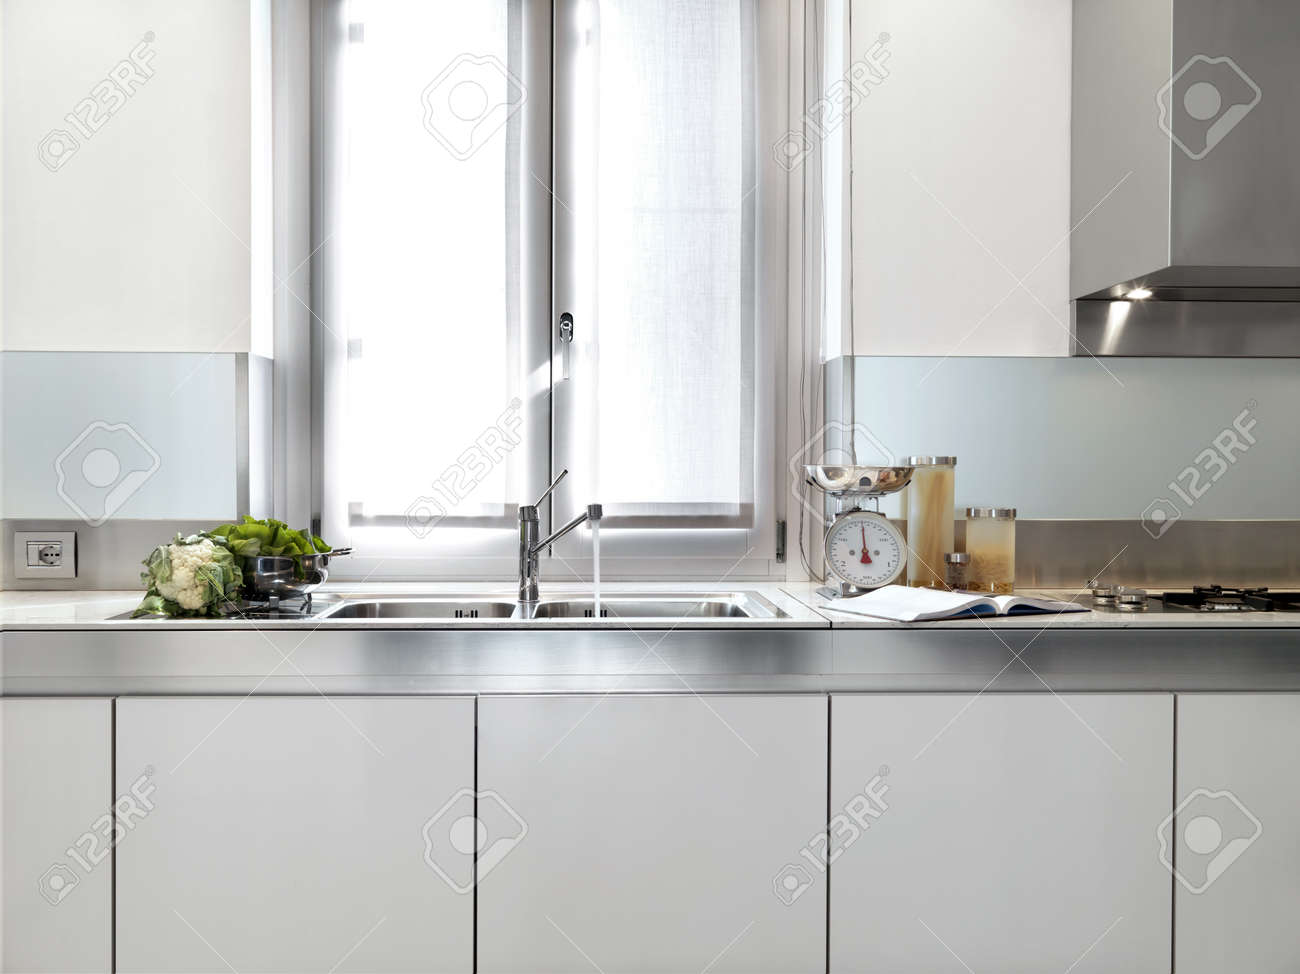 detail of sink of a modern white kitchen Stock Photo - 11261205